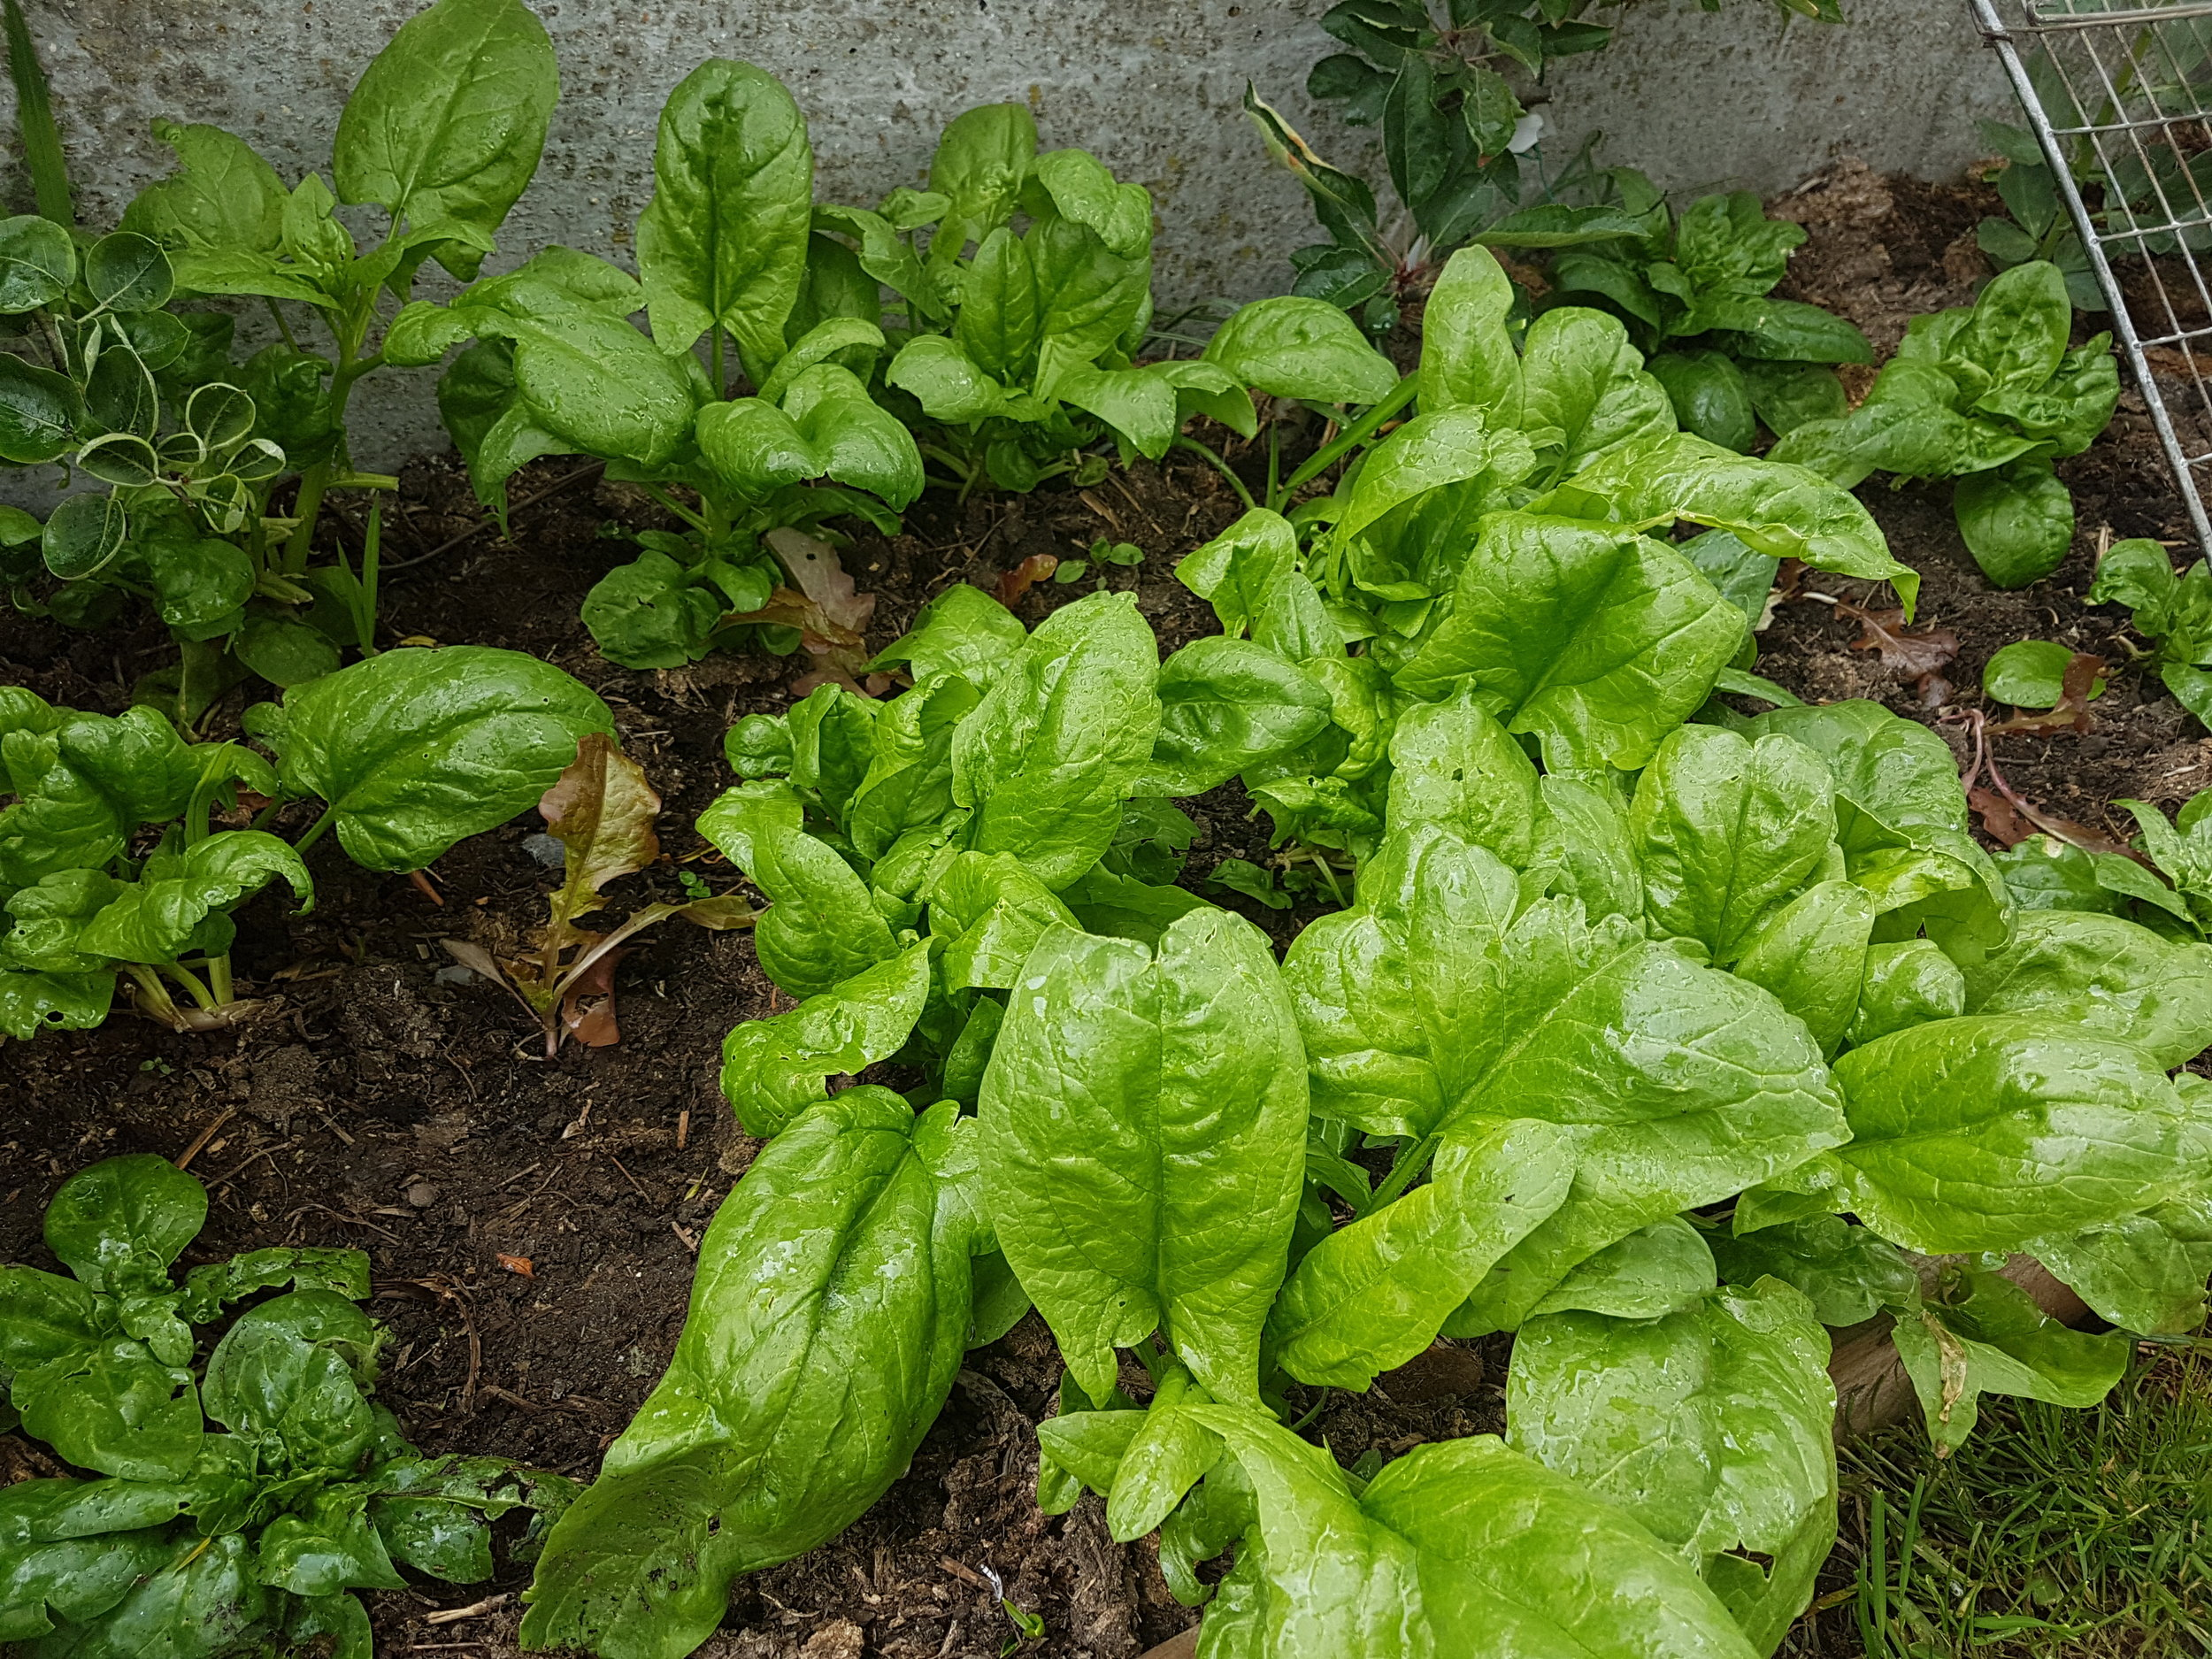 Spinach is easy to grow and a great homegrown veggie